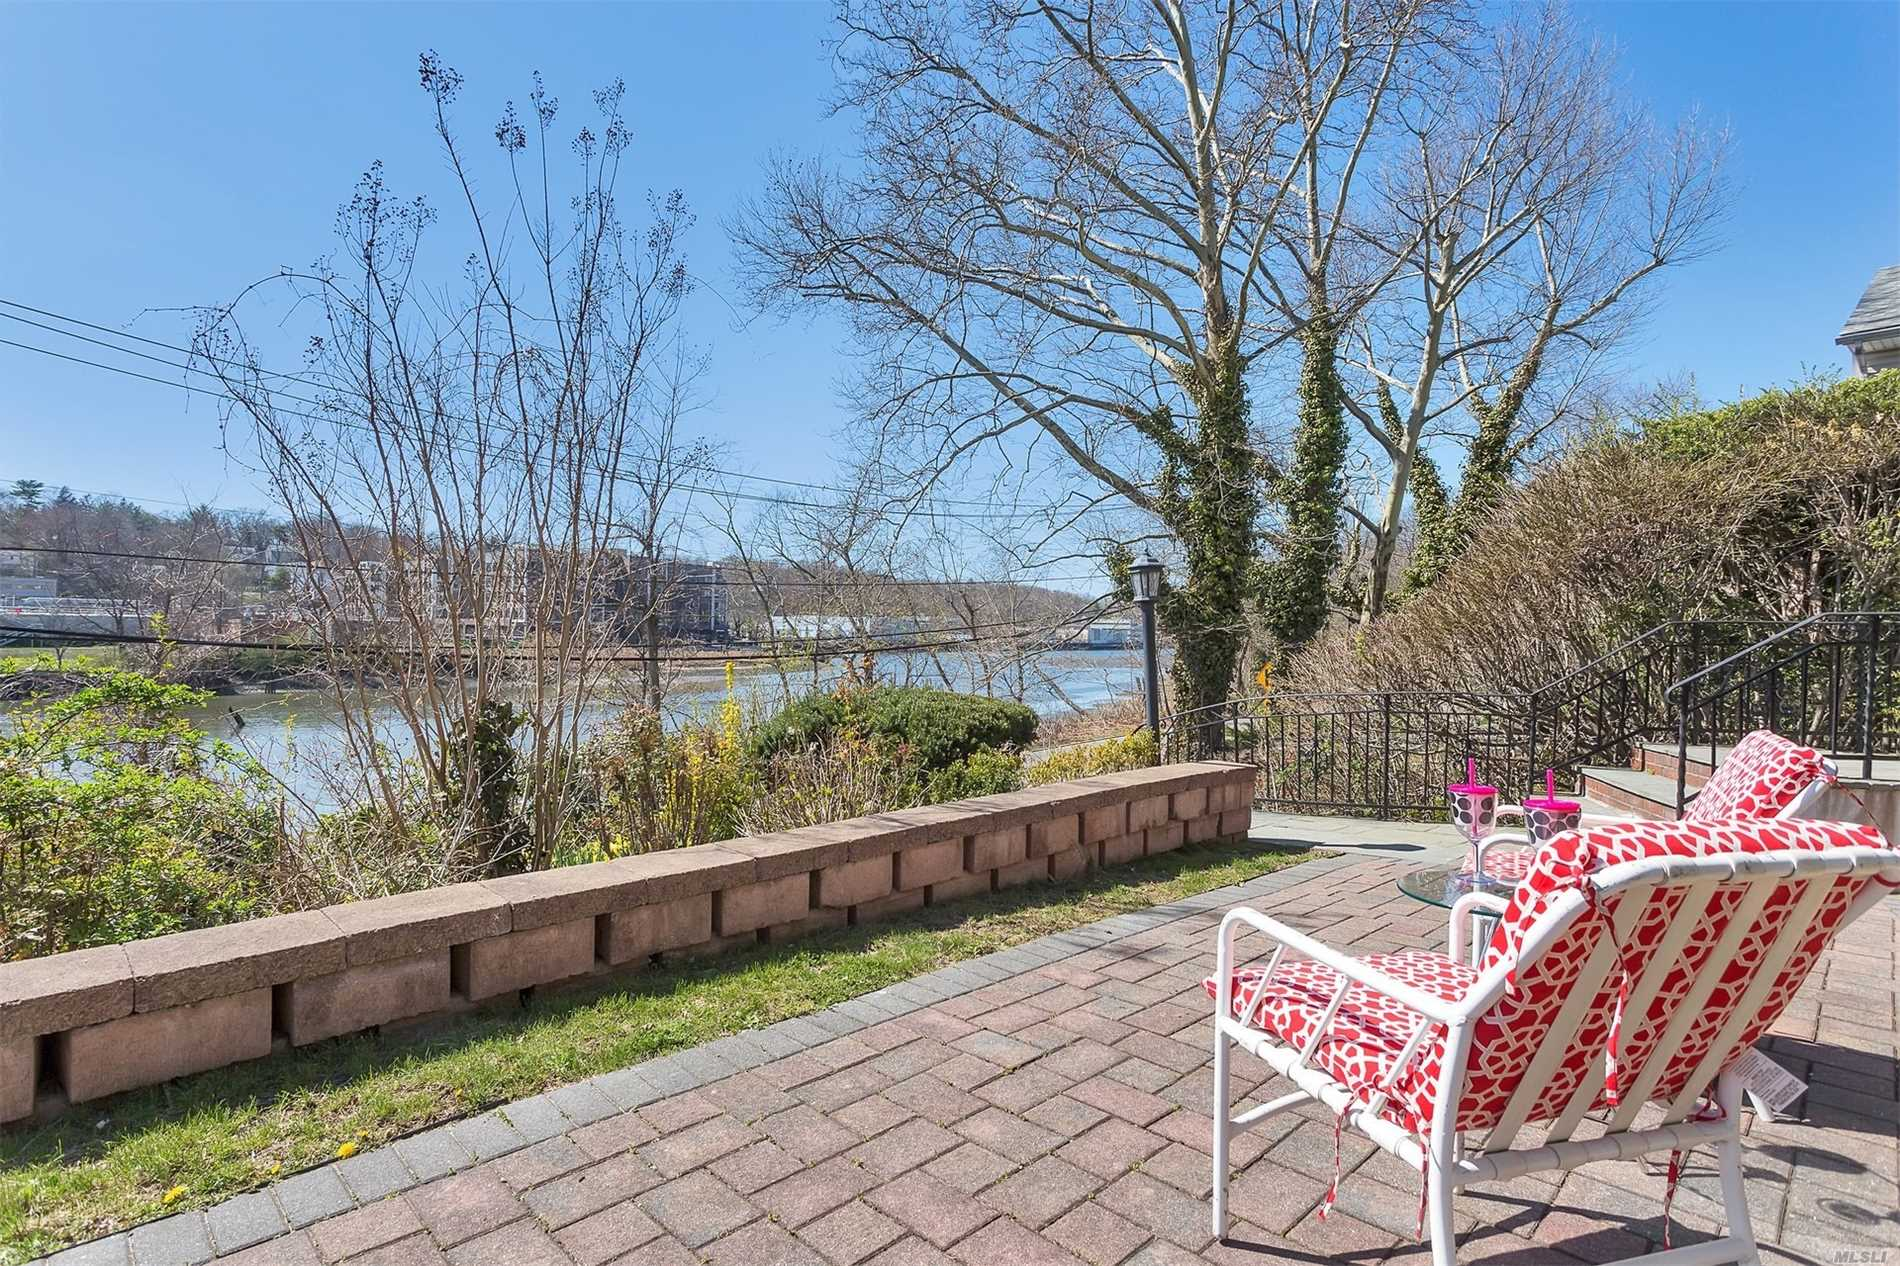 Waterfront Bay Views - Large Waterfront Stone Patio, Entry To Large Lr W/Fp, Fdr, Eik W/Granite Counters, Lower Level Family Rm & Full Bath. 2nd Level Mbr, Mbth, 2 Brs (Both Br's With Waterview), Full Bath. Finished Basement W/Rec Rm, Office, Laundry, Boiler Rm, Closets, 1Car-Plus Garage. New Rear/Side/ Retaining Wall. New Rear/Front Pavers.Entire House New Paint, Wood Floors Refinished, New Alarm System, Central Vaccume, Inground Sprinklers, Central Ac.Rear Private Lovely Garden.